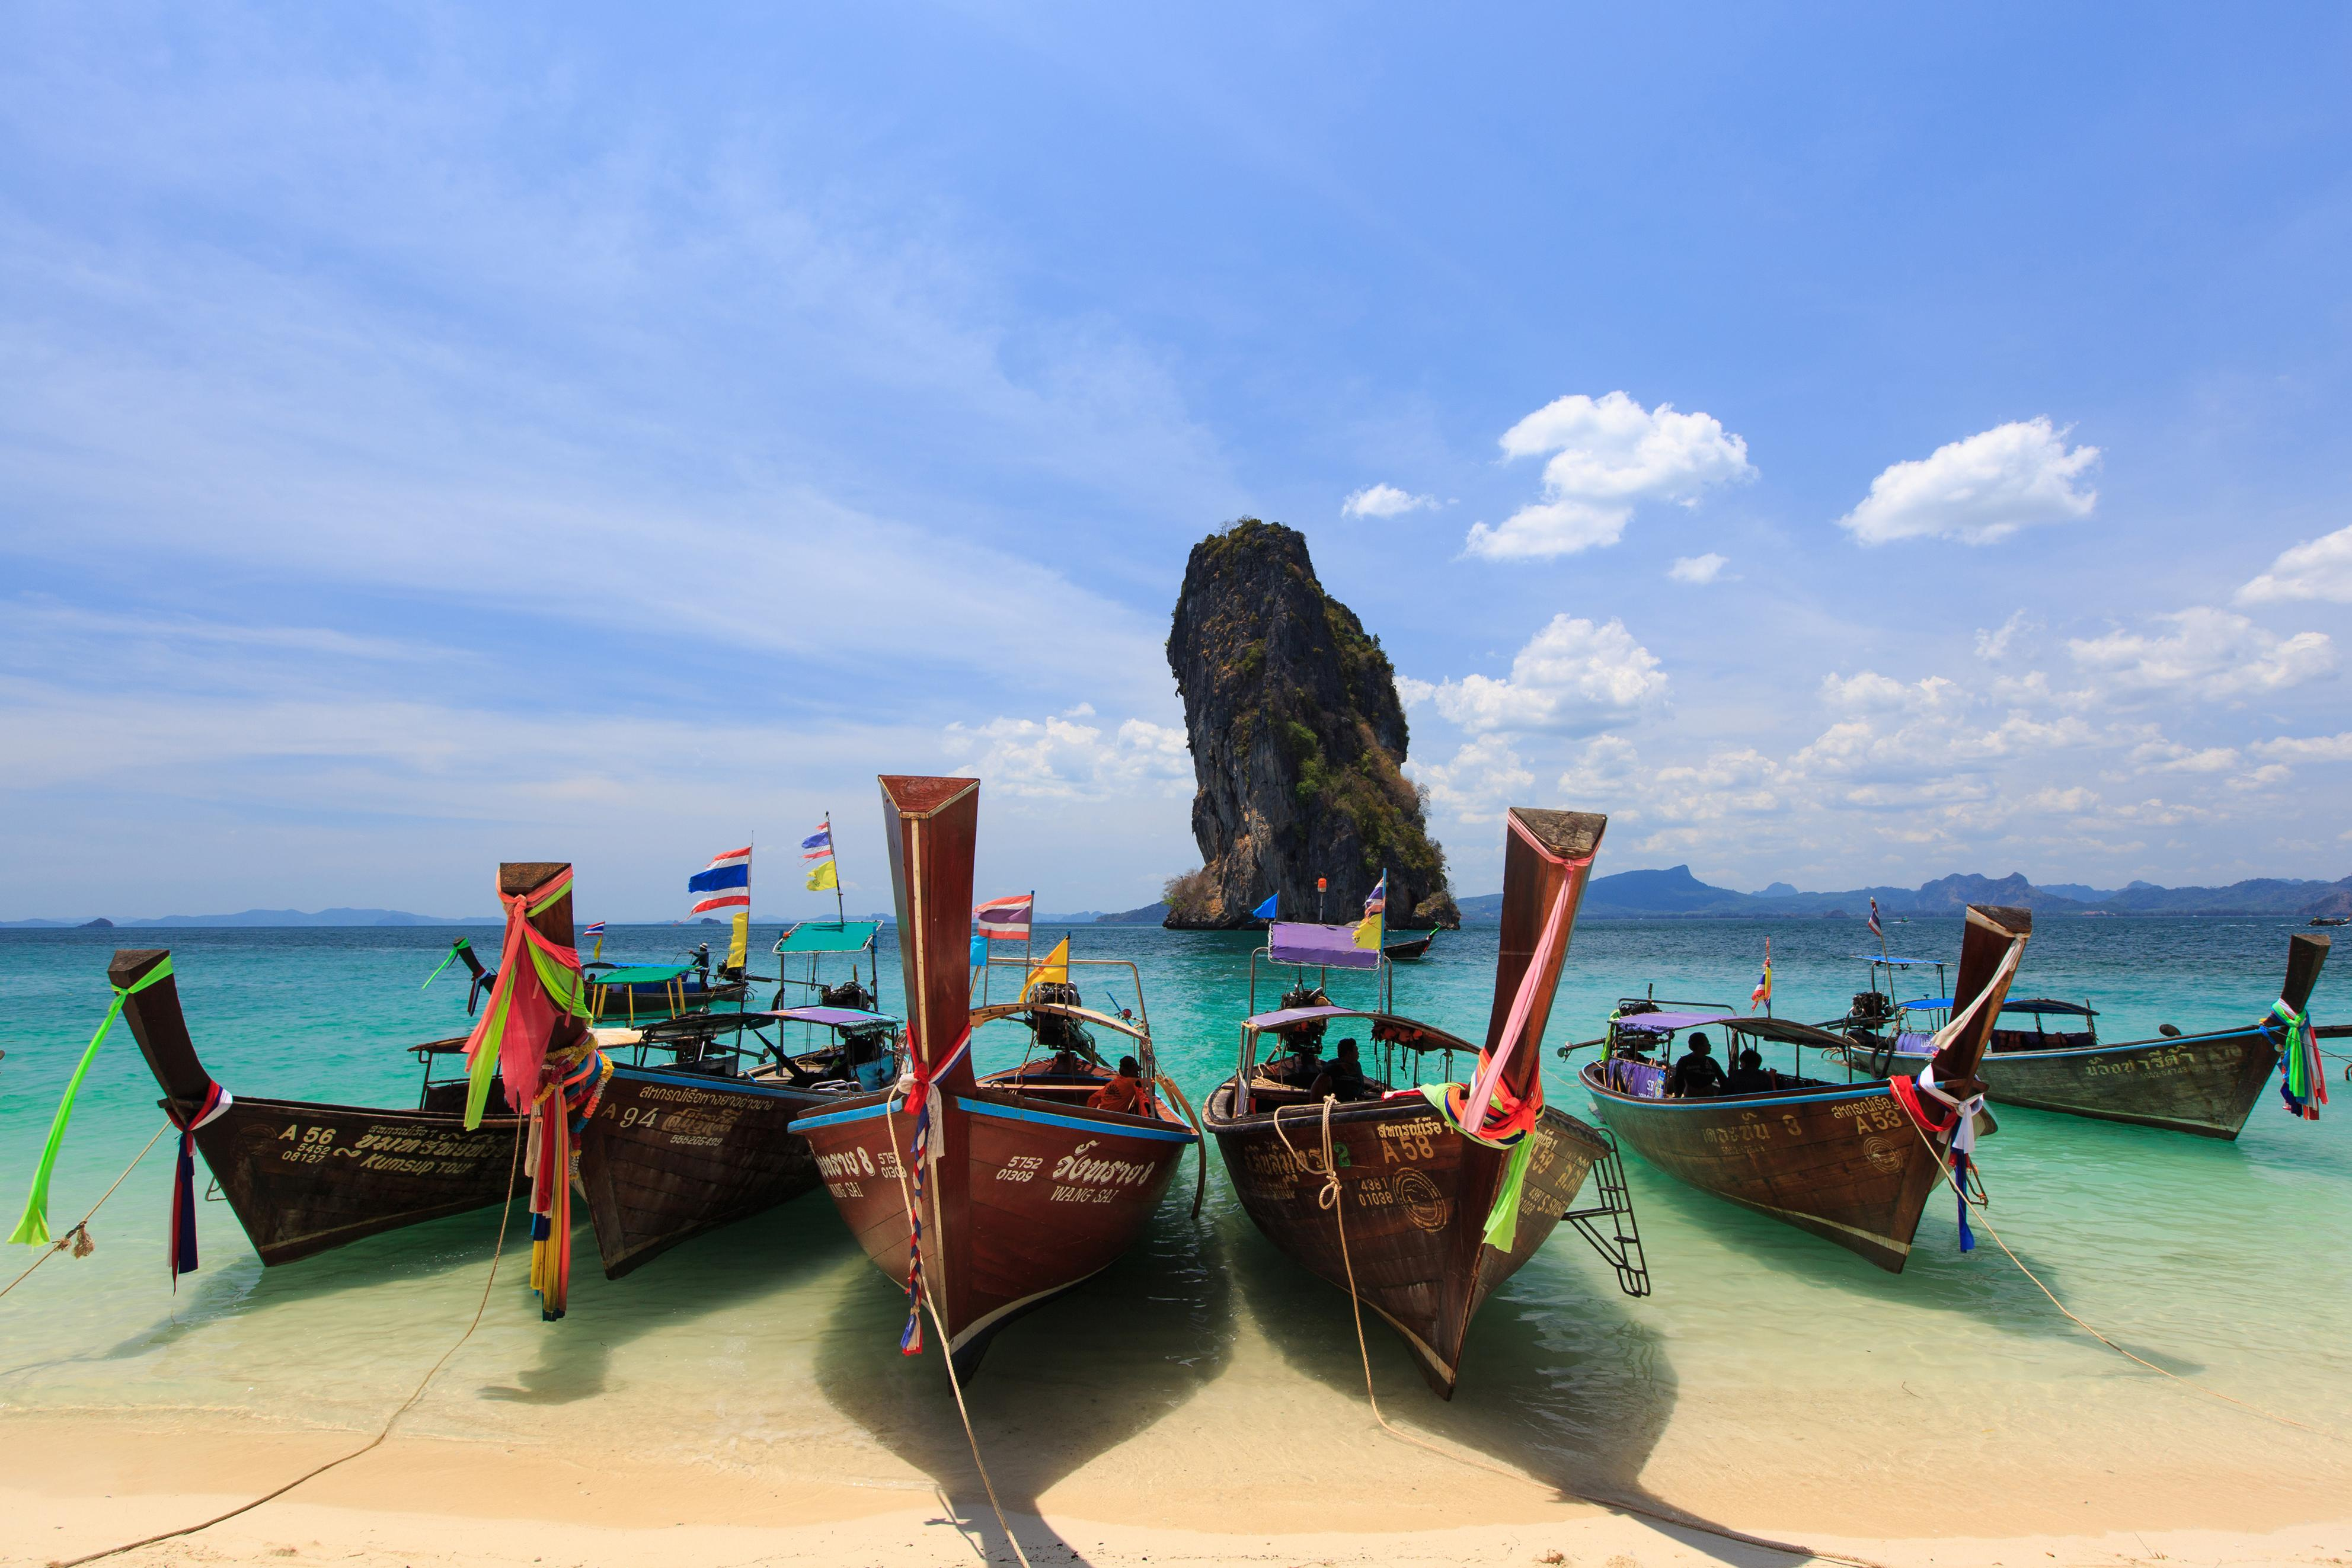 KOH PODA ISLAND. Take a break from the city with a trip to one of Thailand's beaches. Photo courtesy of the Tourism Authority of Thailand